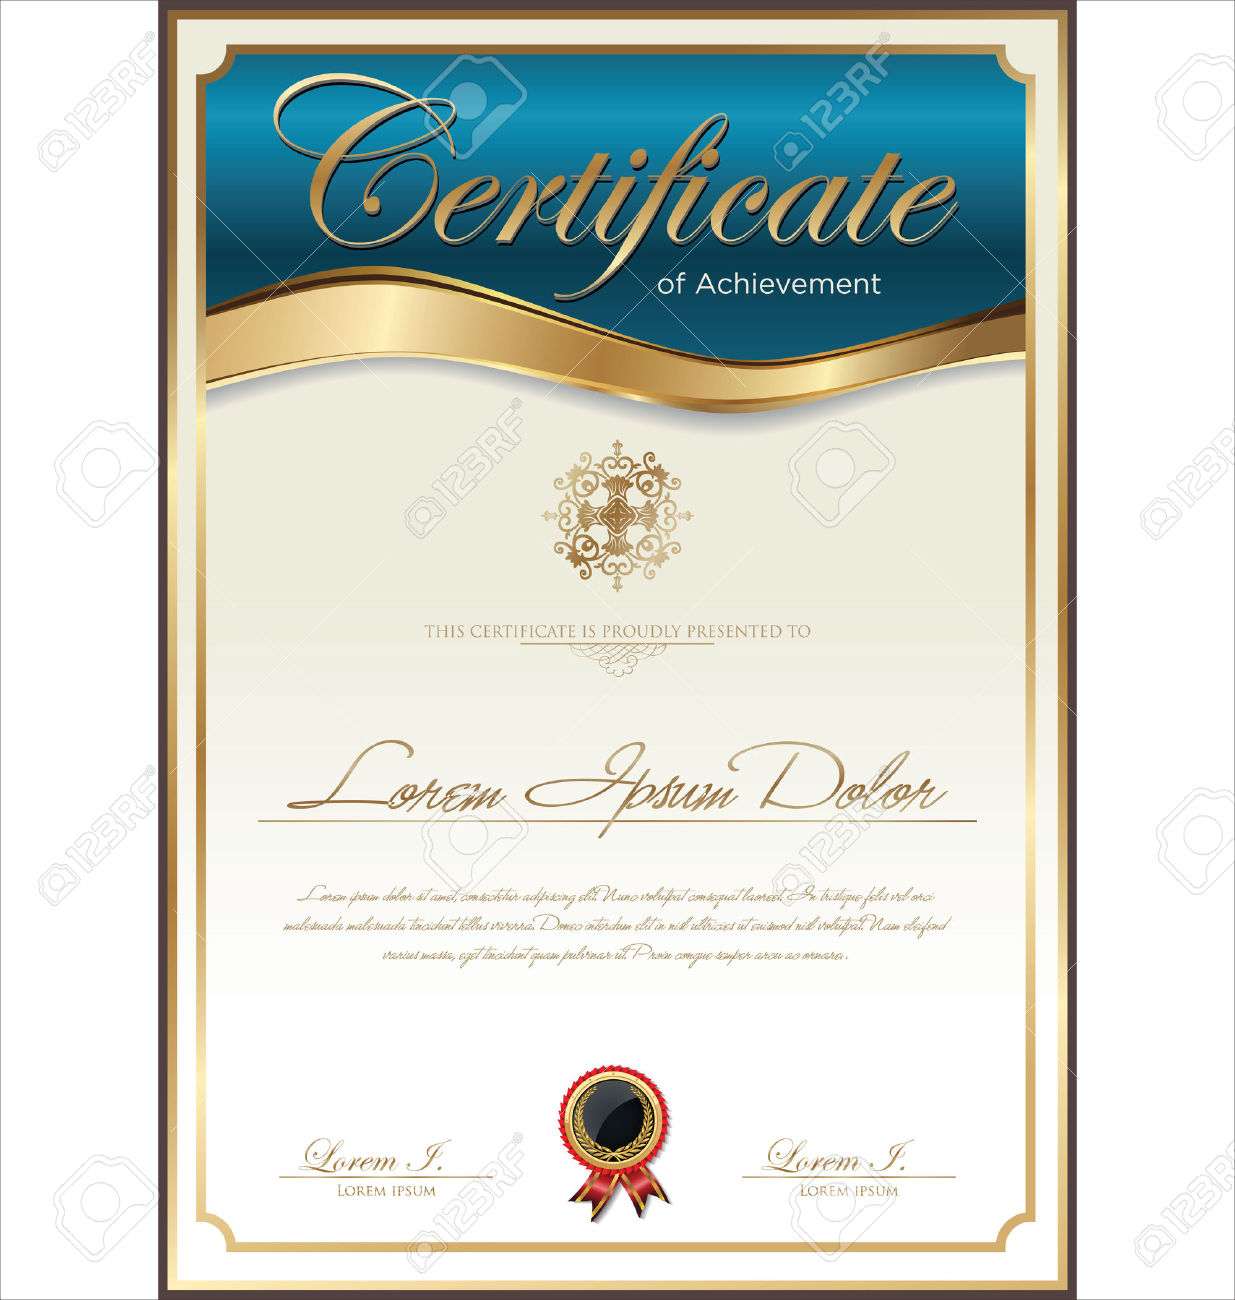 certificate design template certificate templates rich image and wallpaper